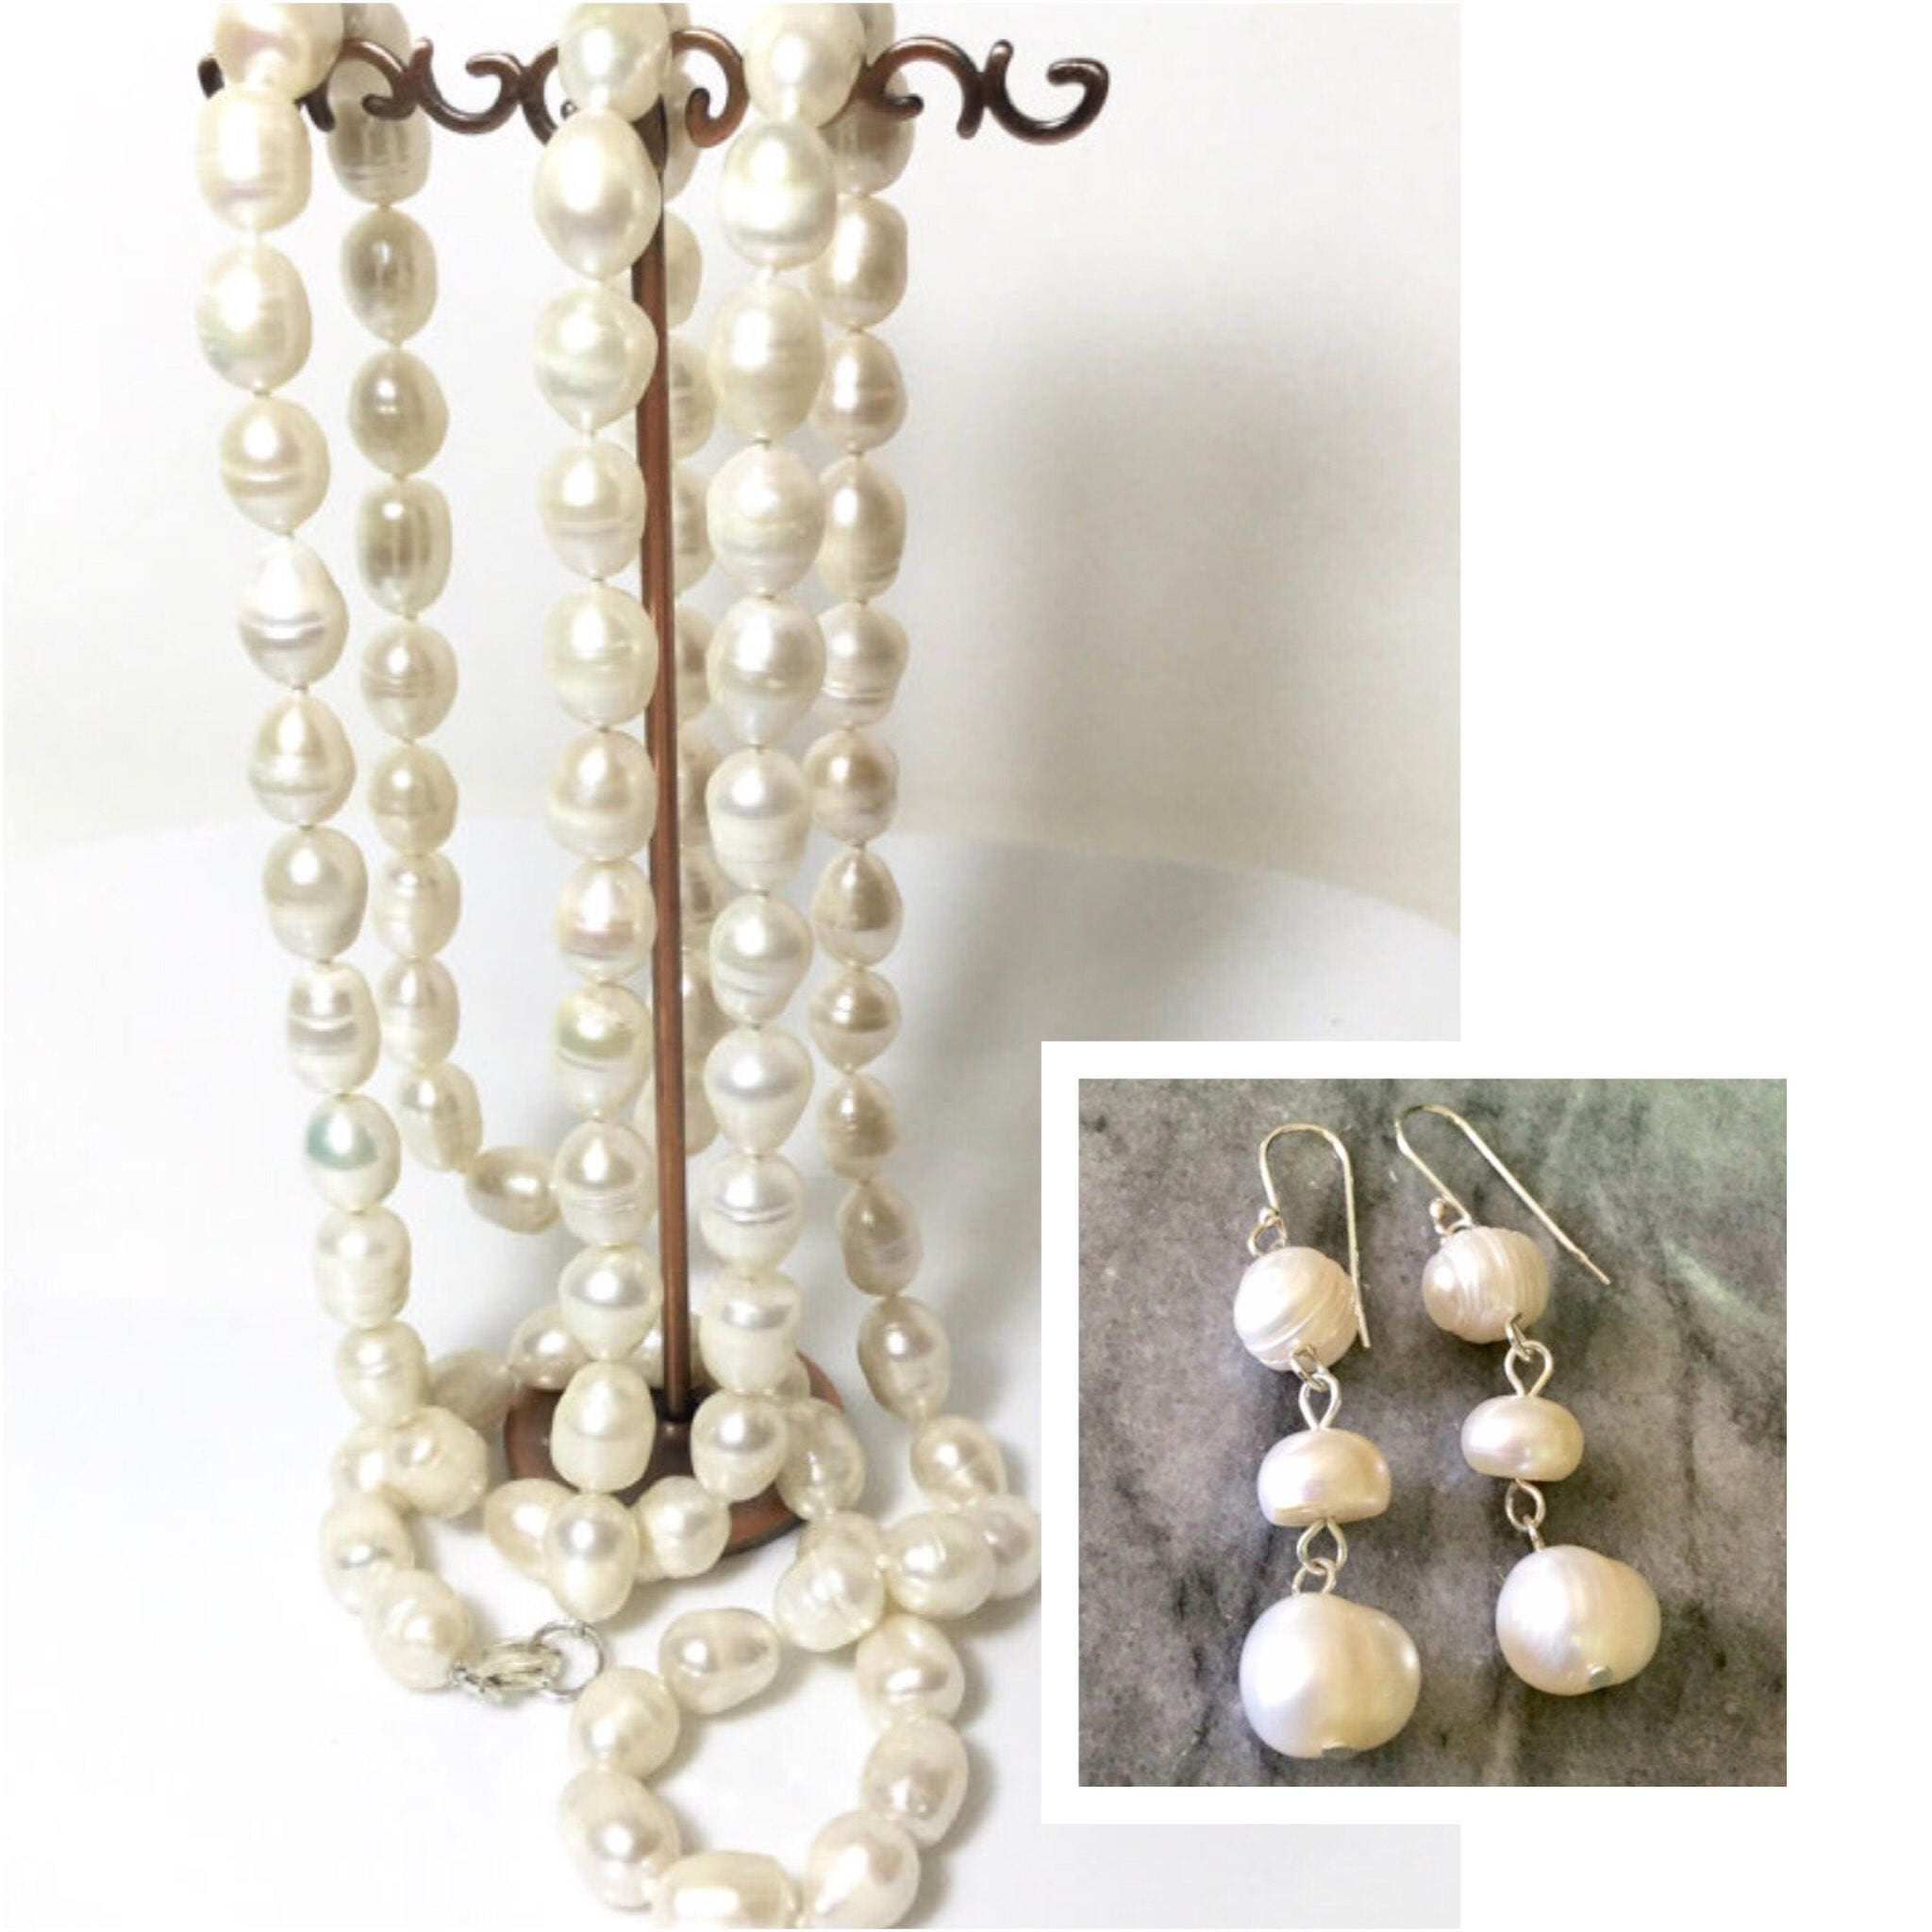 Large Pearl Necklace Sterling Silver Pearl Bead Necklace Natural Pearl  Knotted 47 Inches Long Pearl Earrings Genuine Freshwater